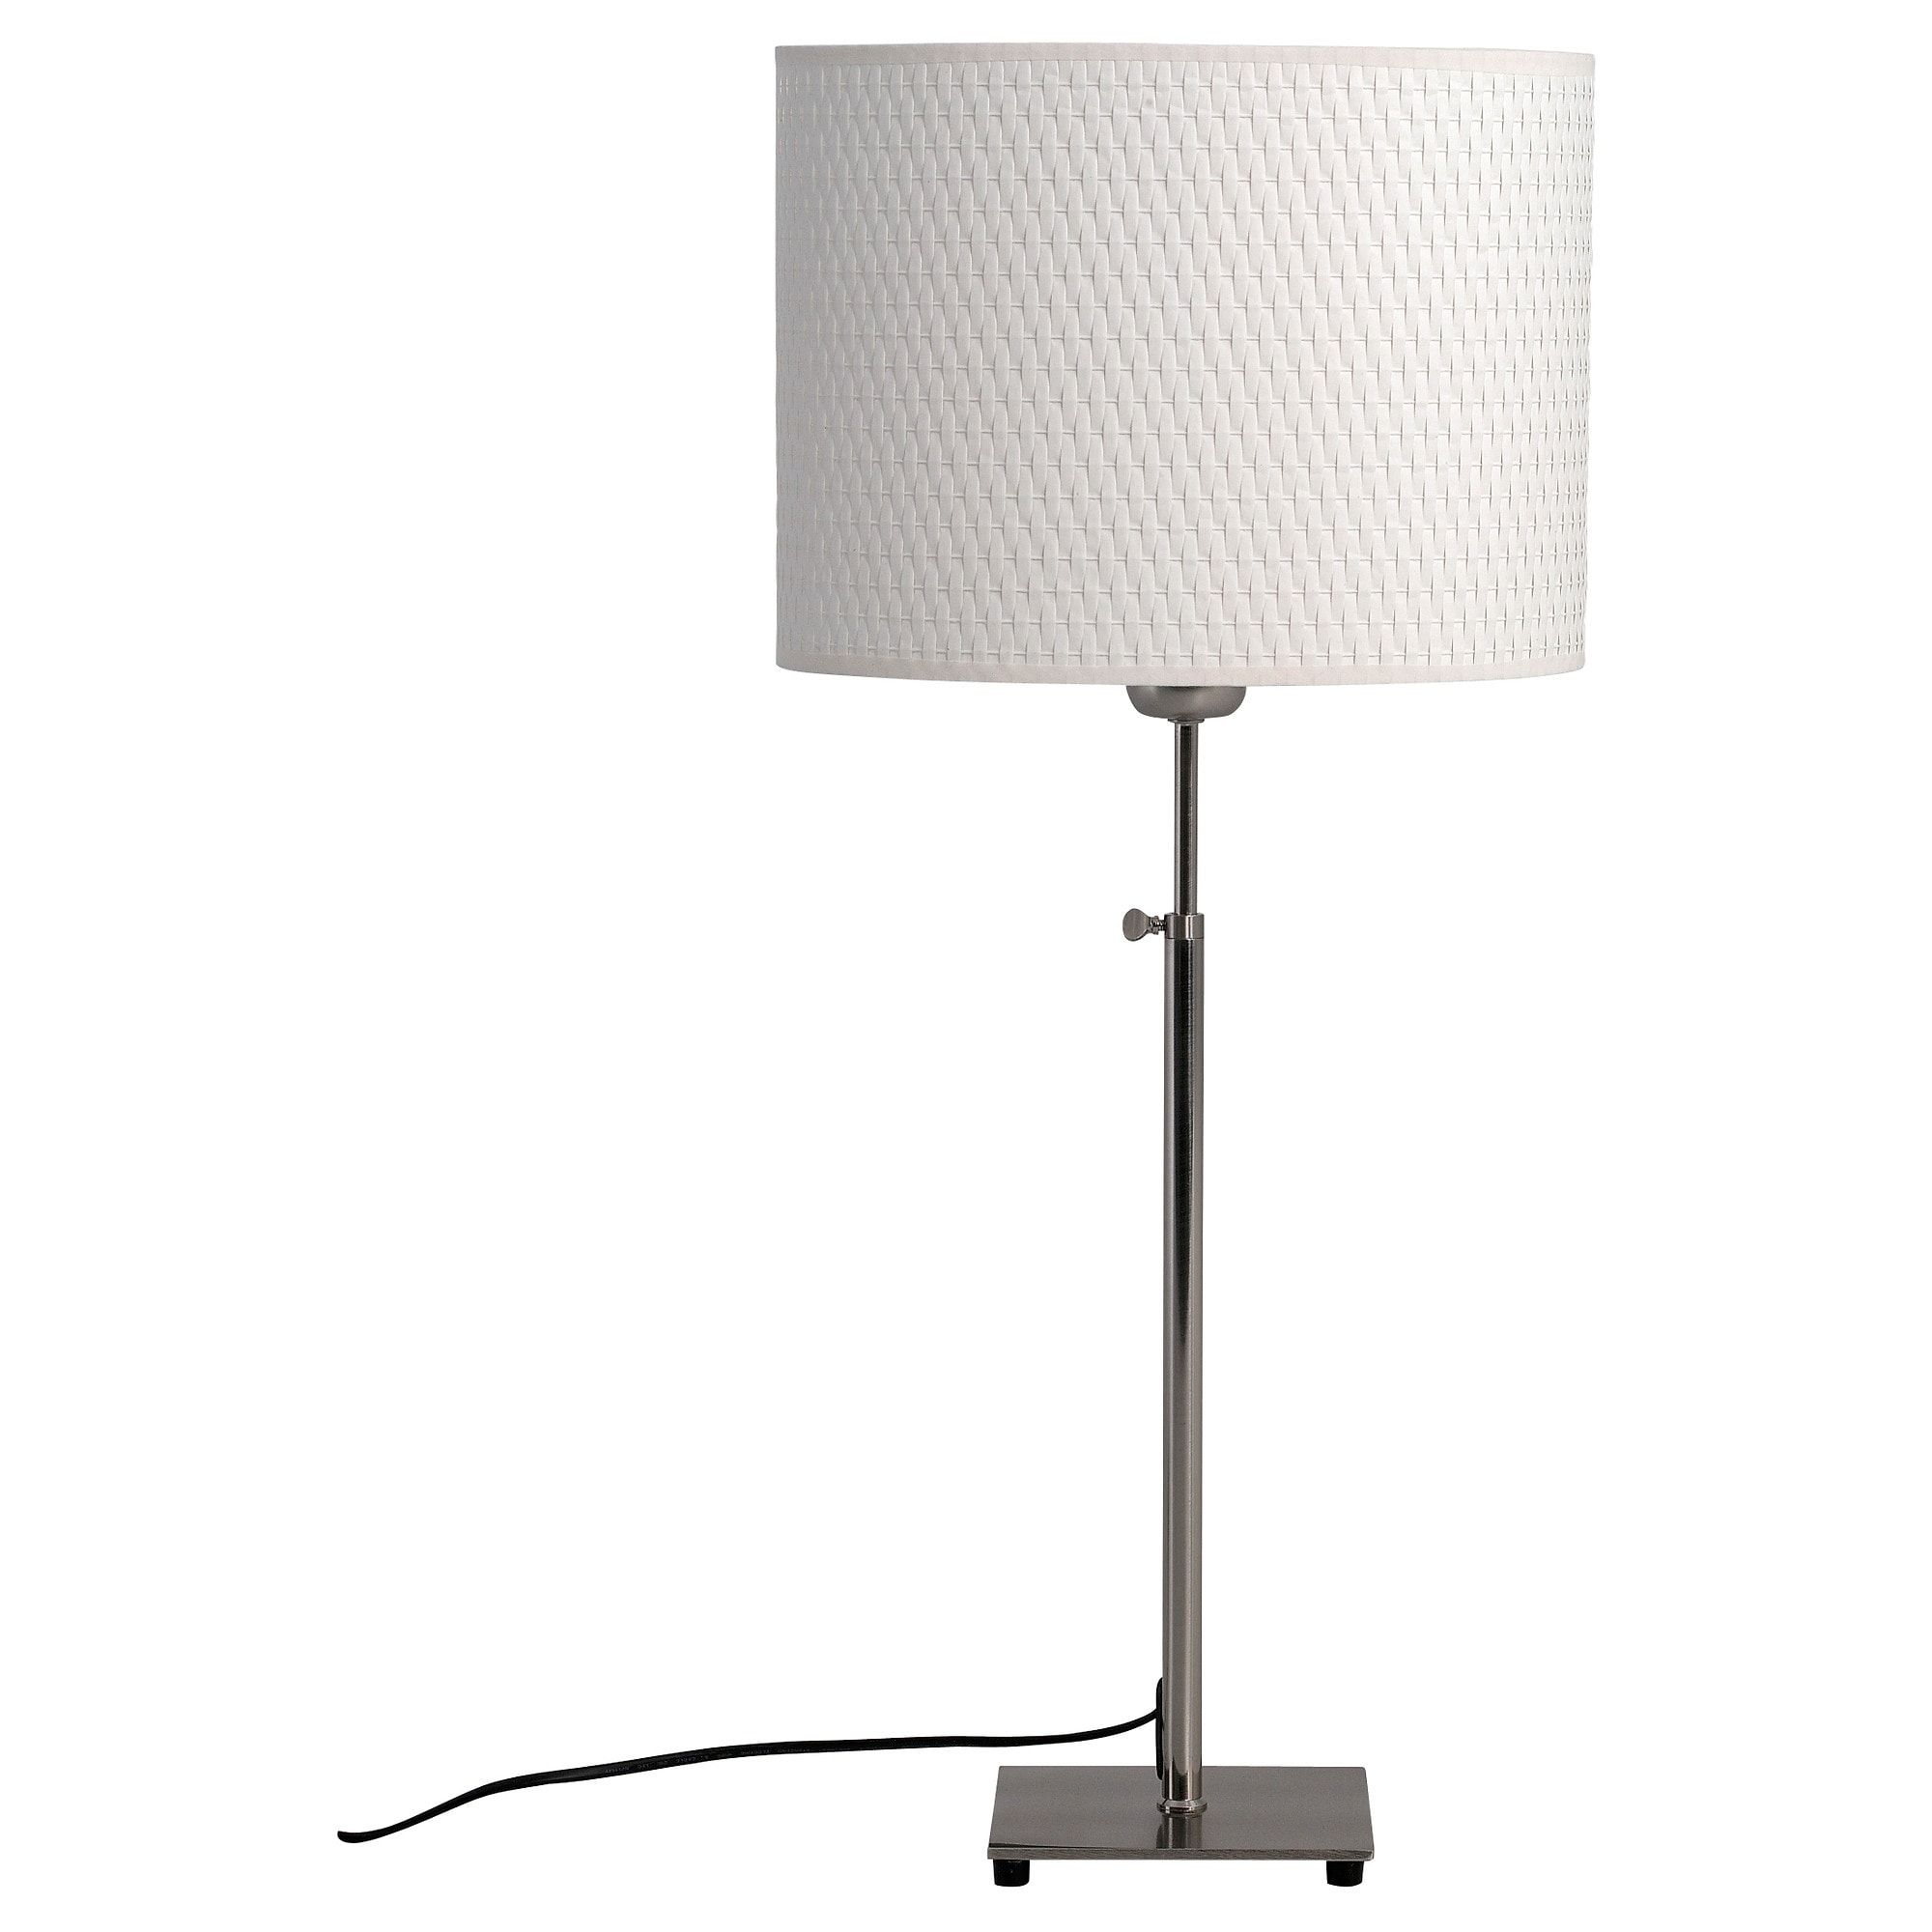 ALÄNG Table lamp with LED bulb nickel plated, white